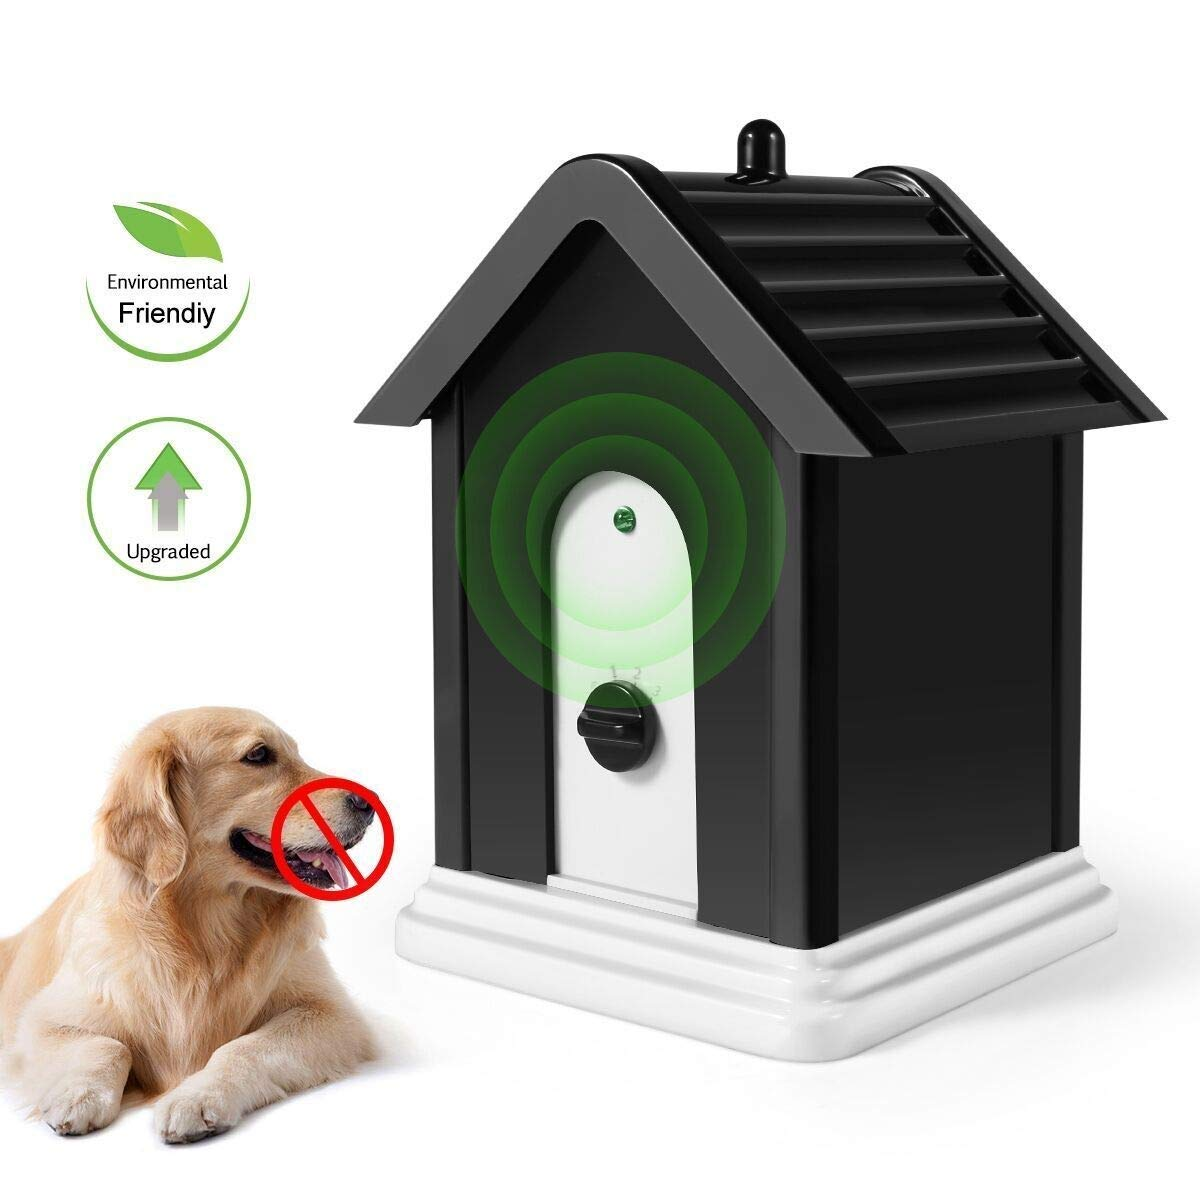 SOARING Anti Barking Device, Sonic Bark Deterrents ,Bark Control Device,Advanced Outdoor Dog Bark Contrl Box Repellent Device with Adjustable Ultrasonic Level Control Safe for Dogs by SOARING